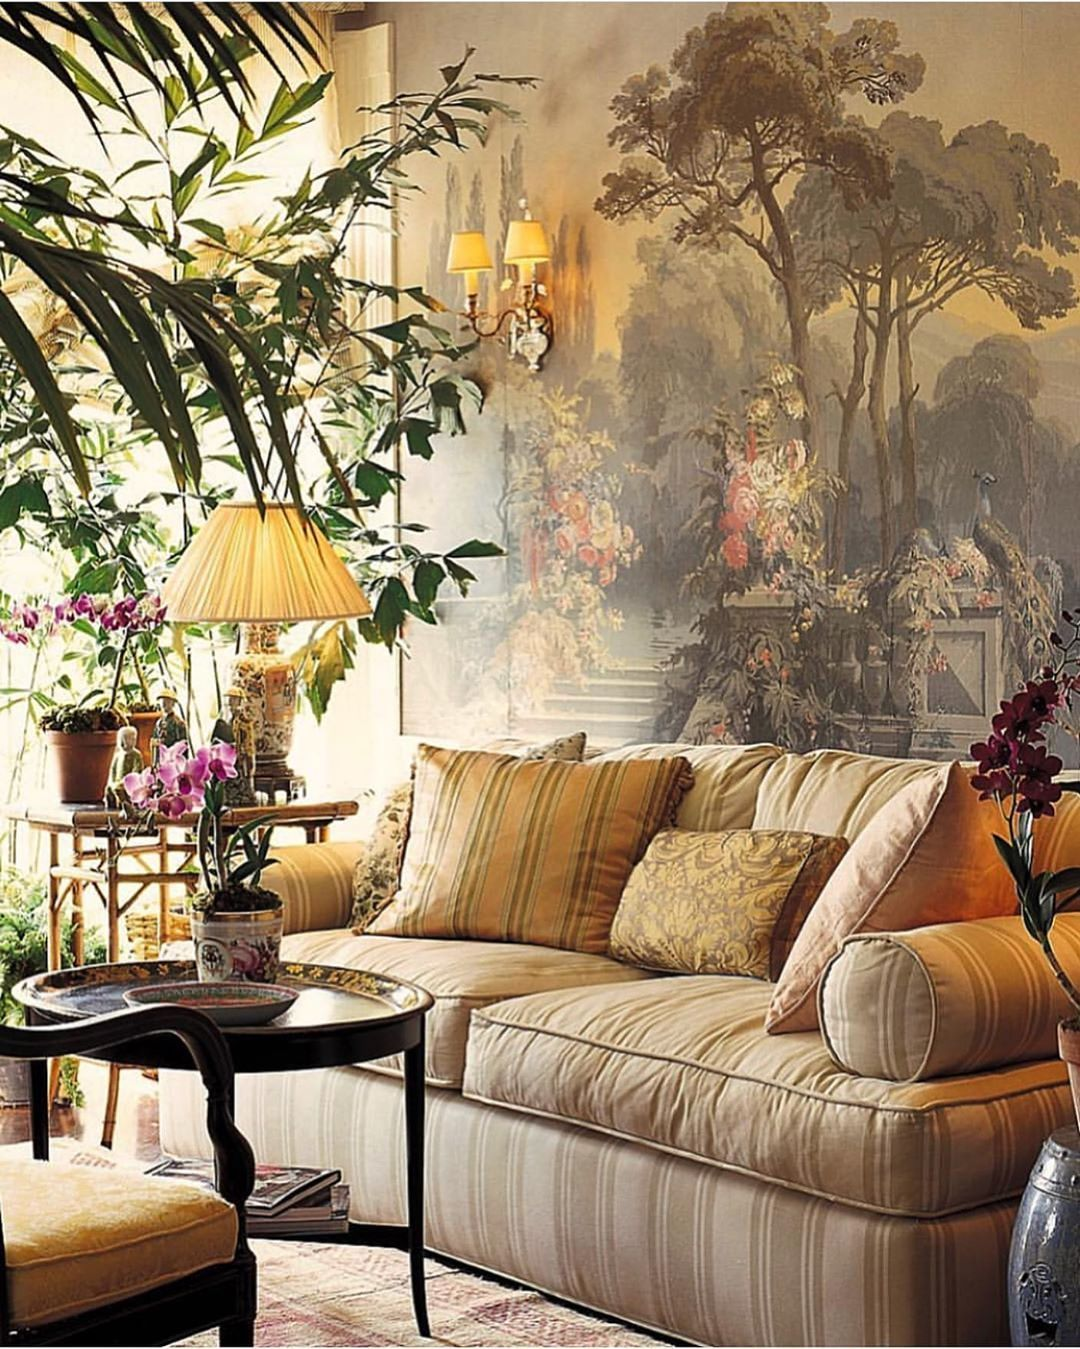 Pin by Lana Pearl on living room Zuber wallpaper, Home